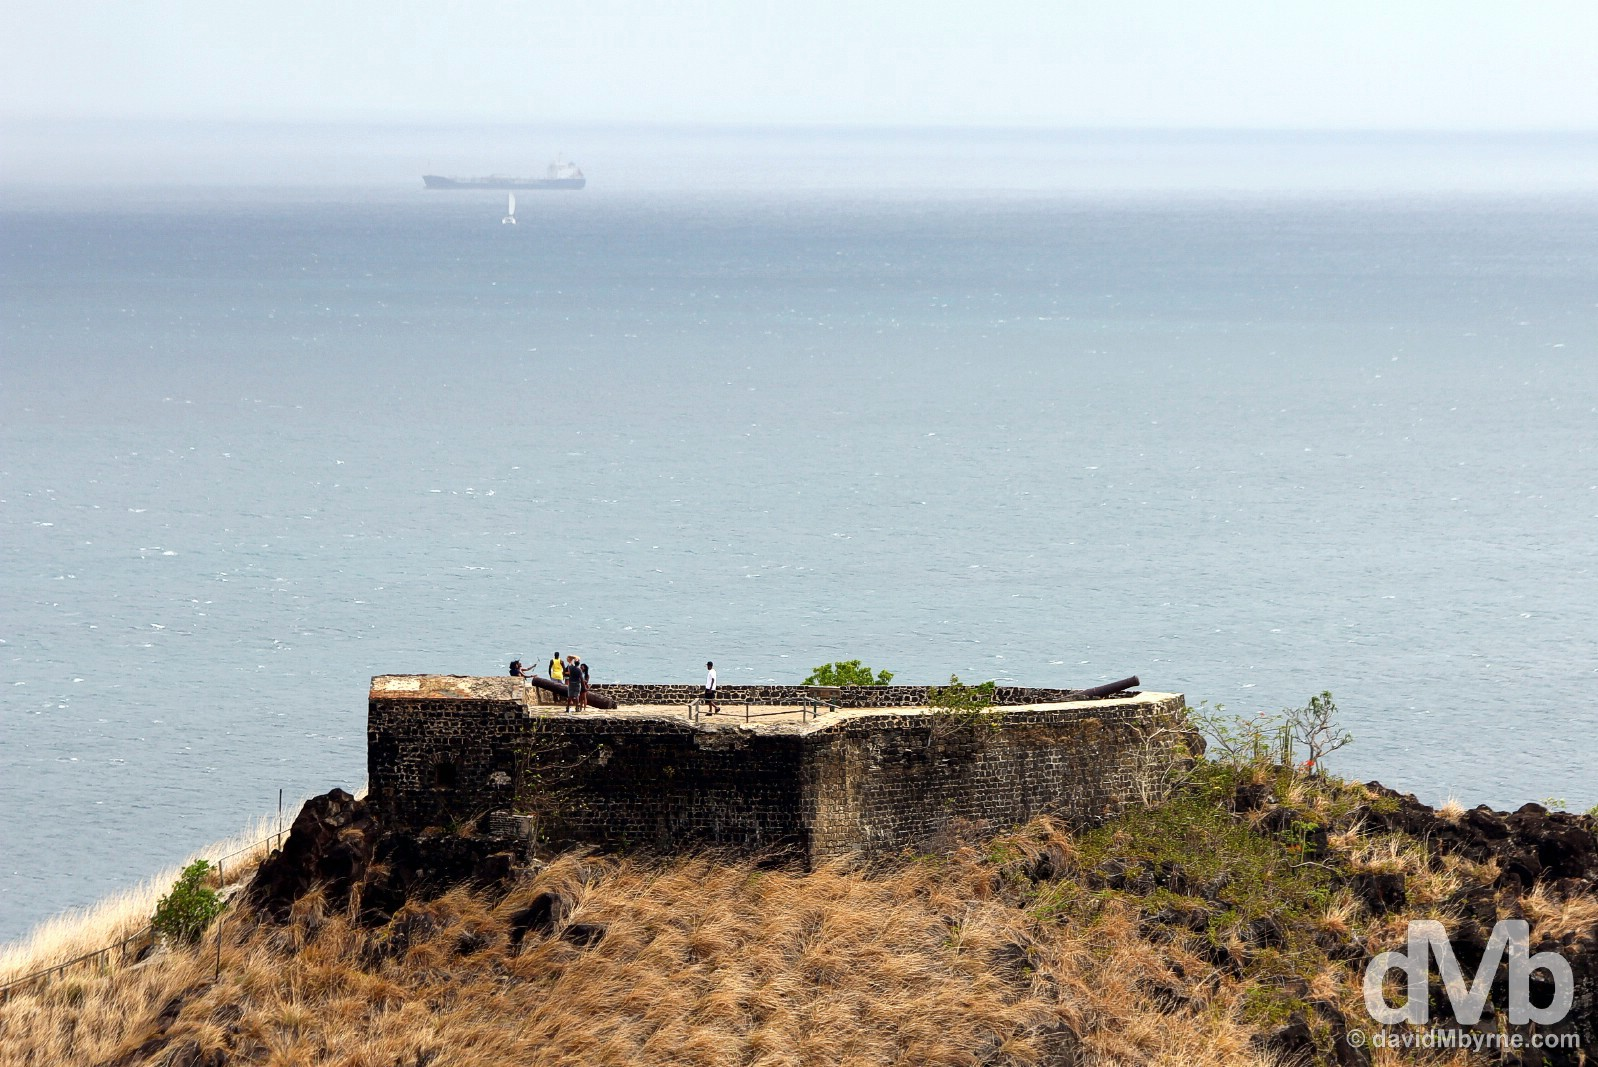 Fort Rodney & far-off shipping as seen from Signal Peak on Pigeon Island, St. Lucia, Lesser Antilles. June 16, 2015.